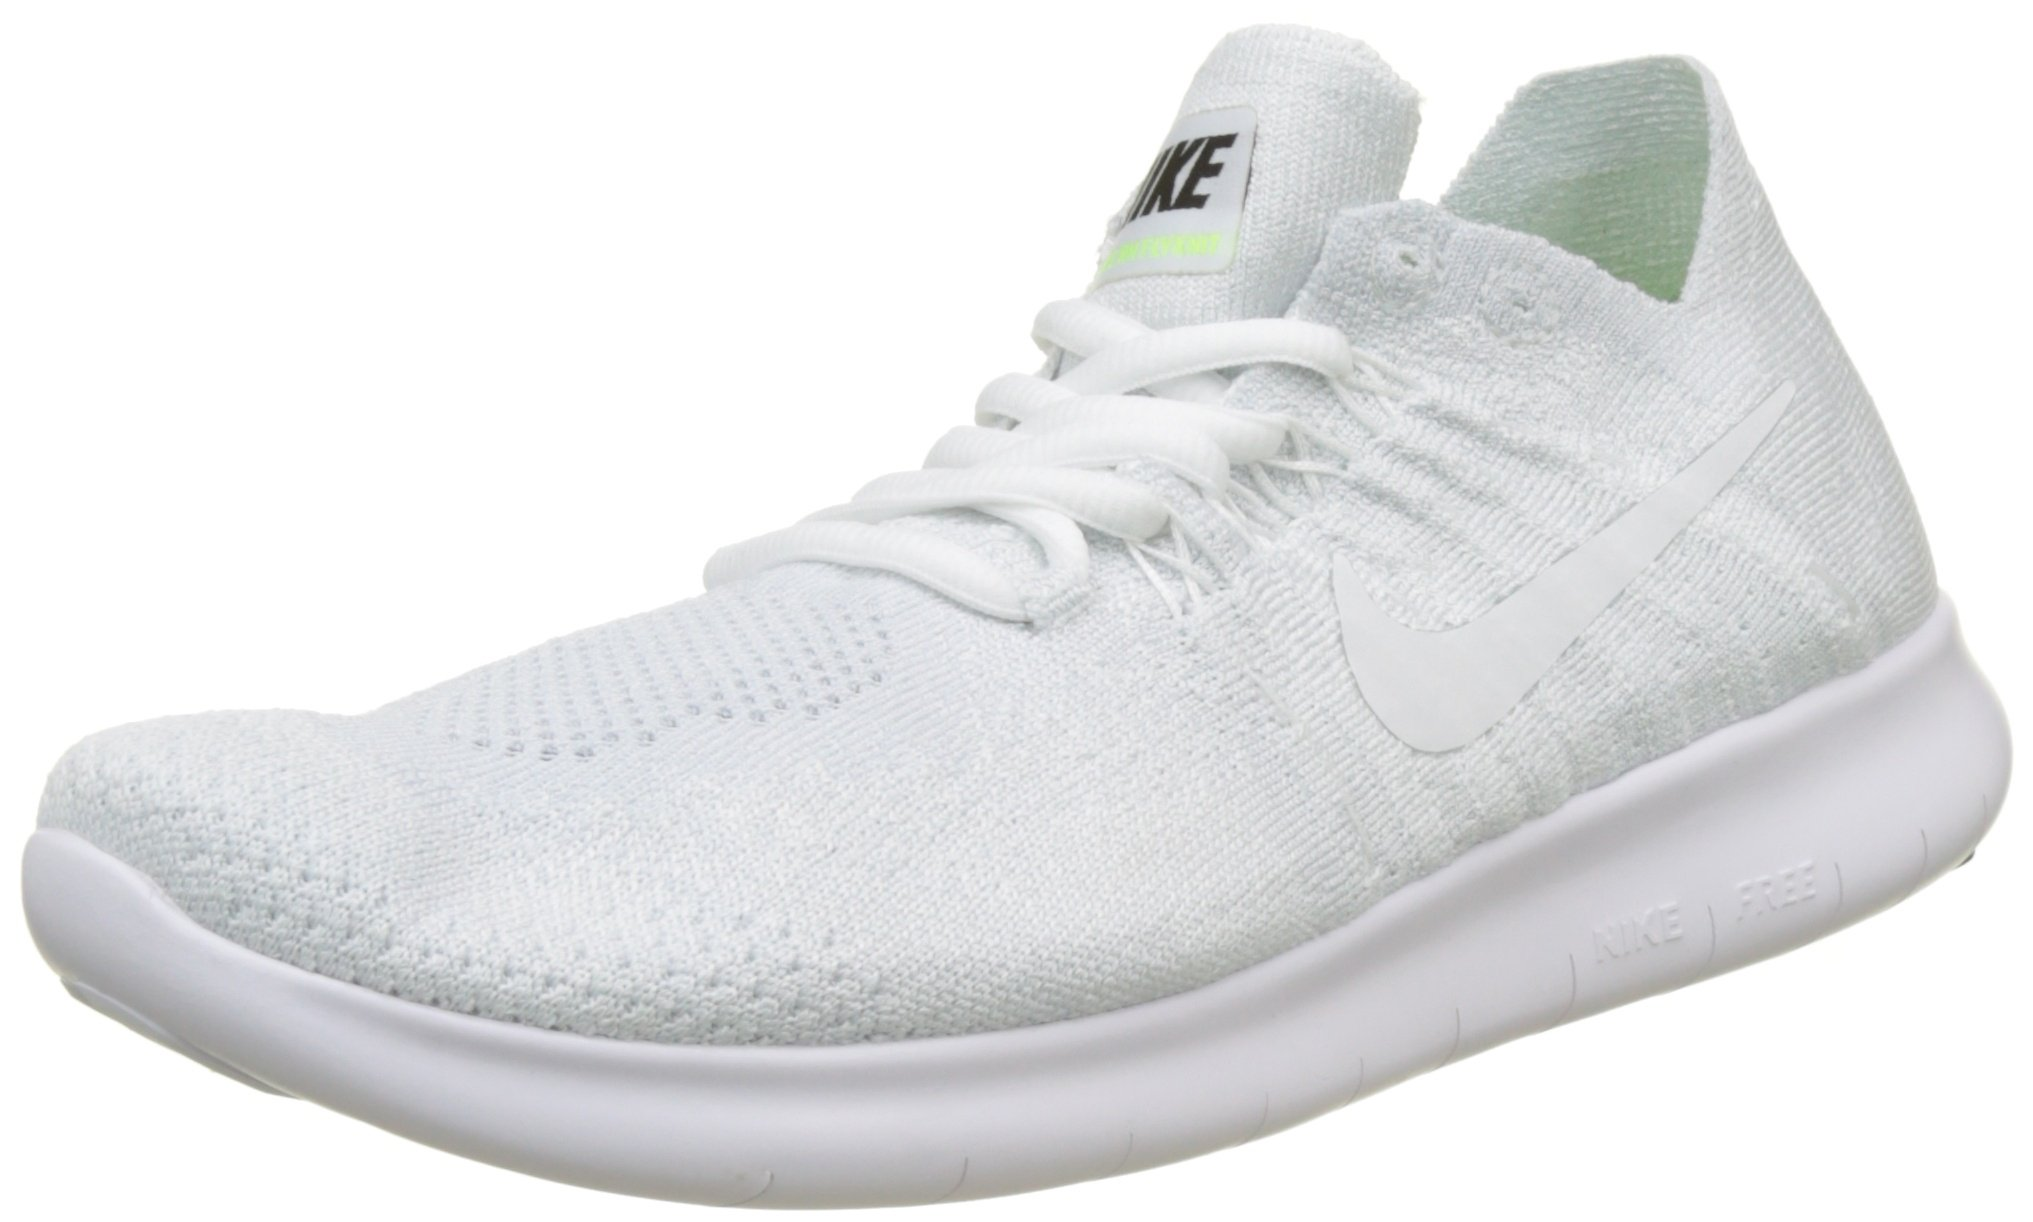 Nike Women's Free RN Flyknit 2017 Running Shoes (9.5, White/Pure Platinum/Black-M)